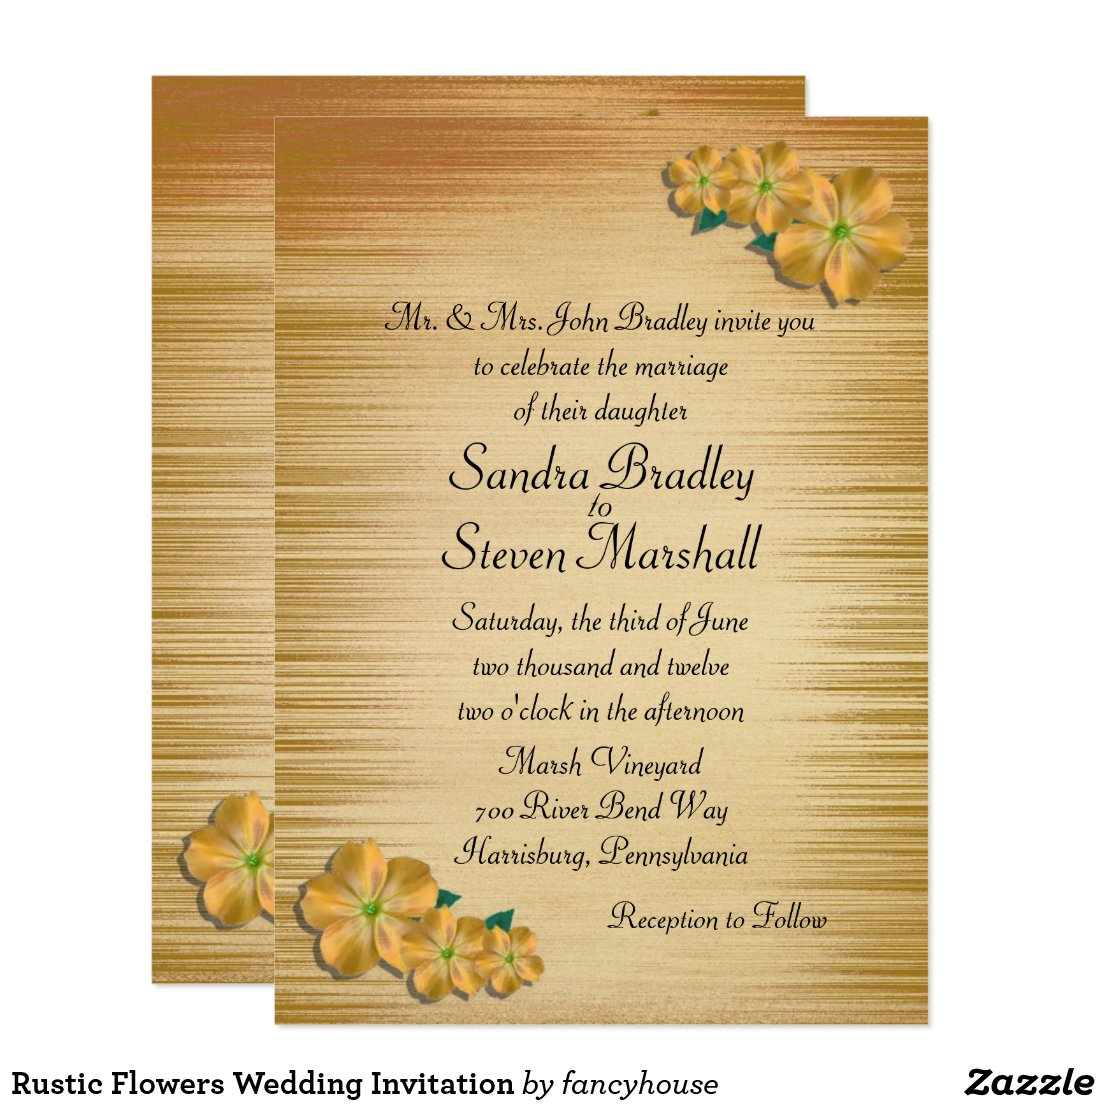 Rustic Flowers Wedding Invitation